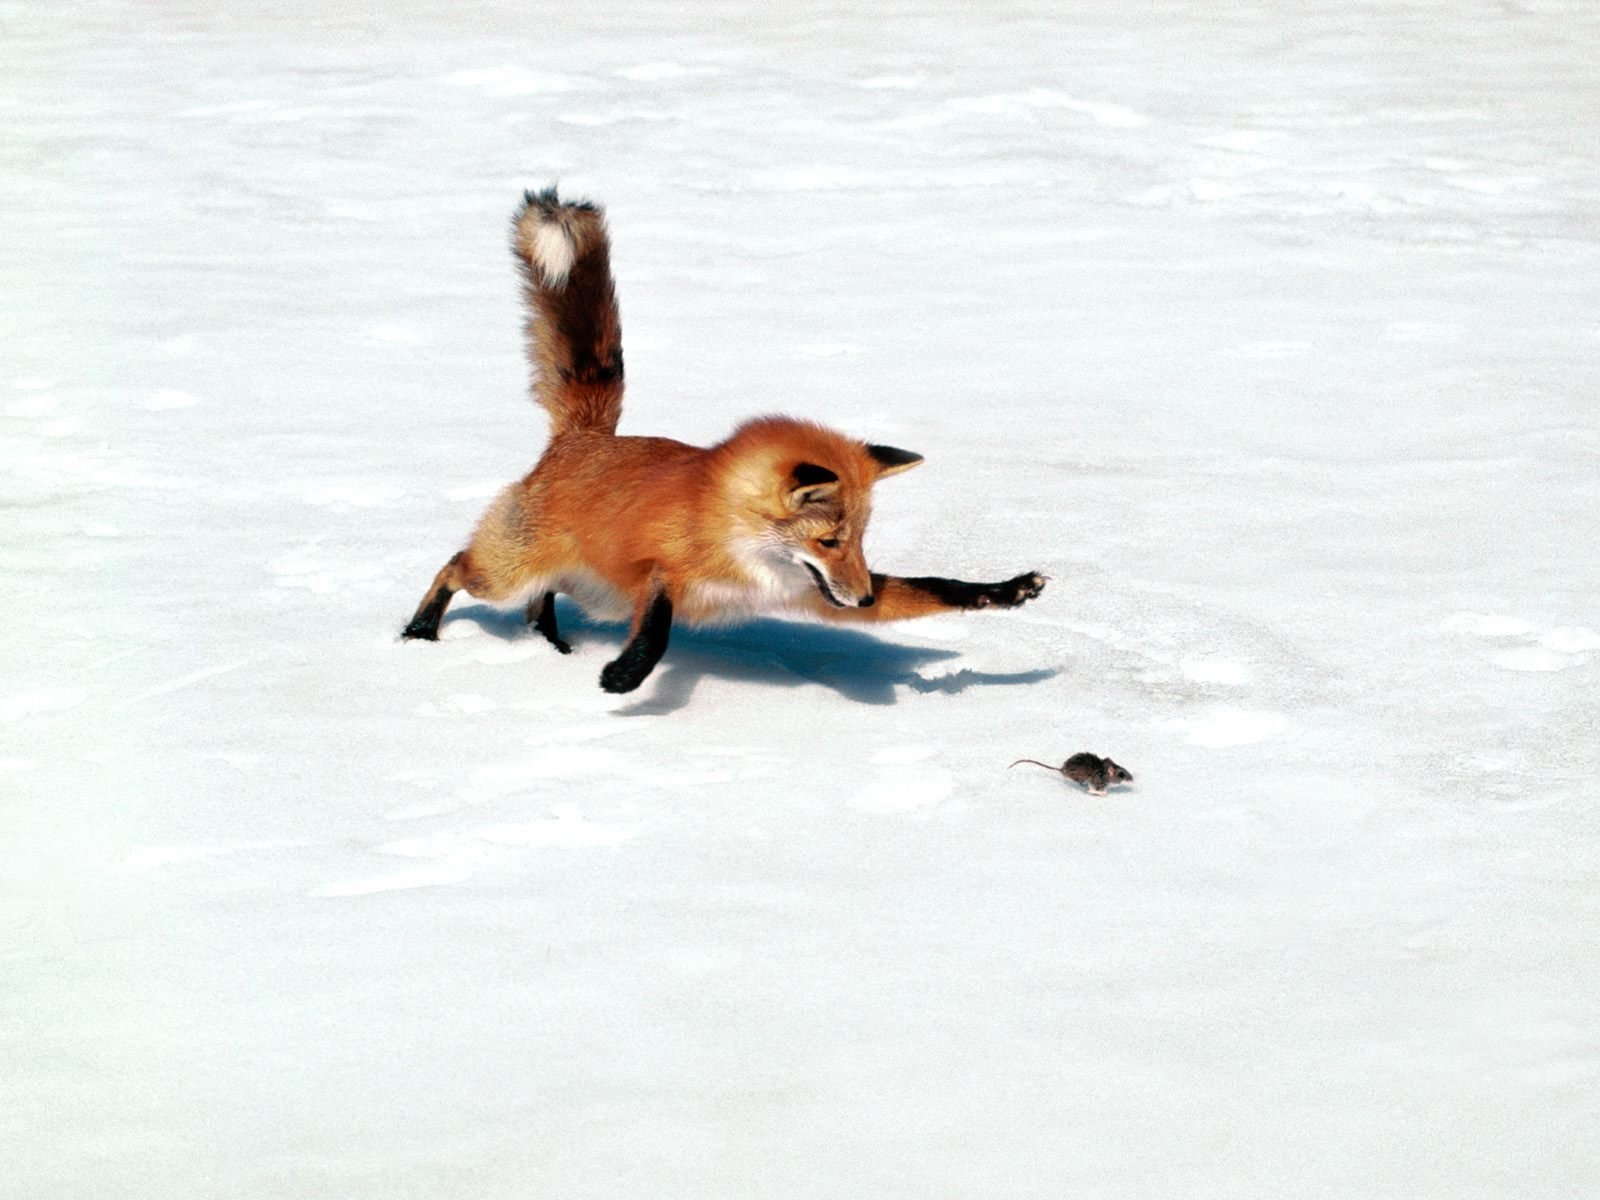 Animal - Fox  Mouse Hunting Animal Snow Wallpaper